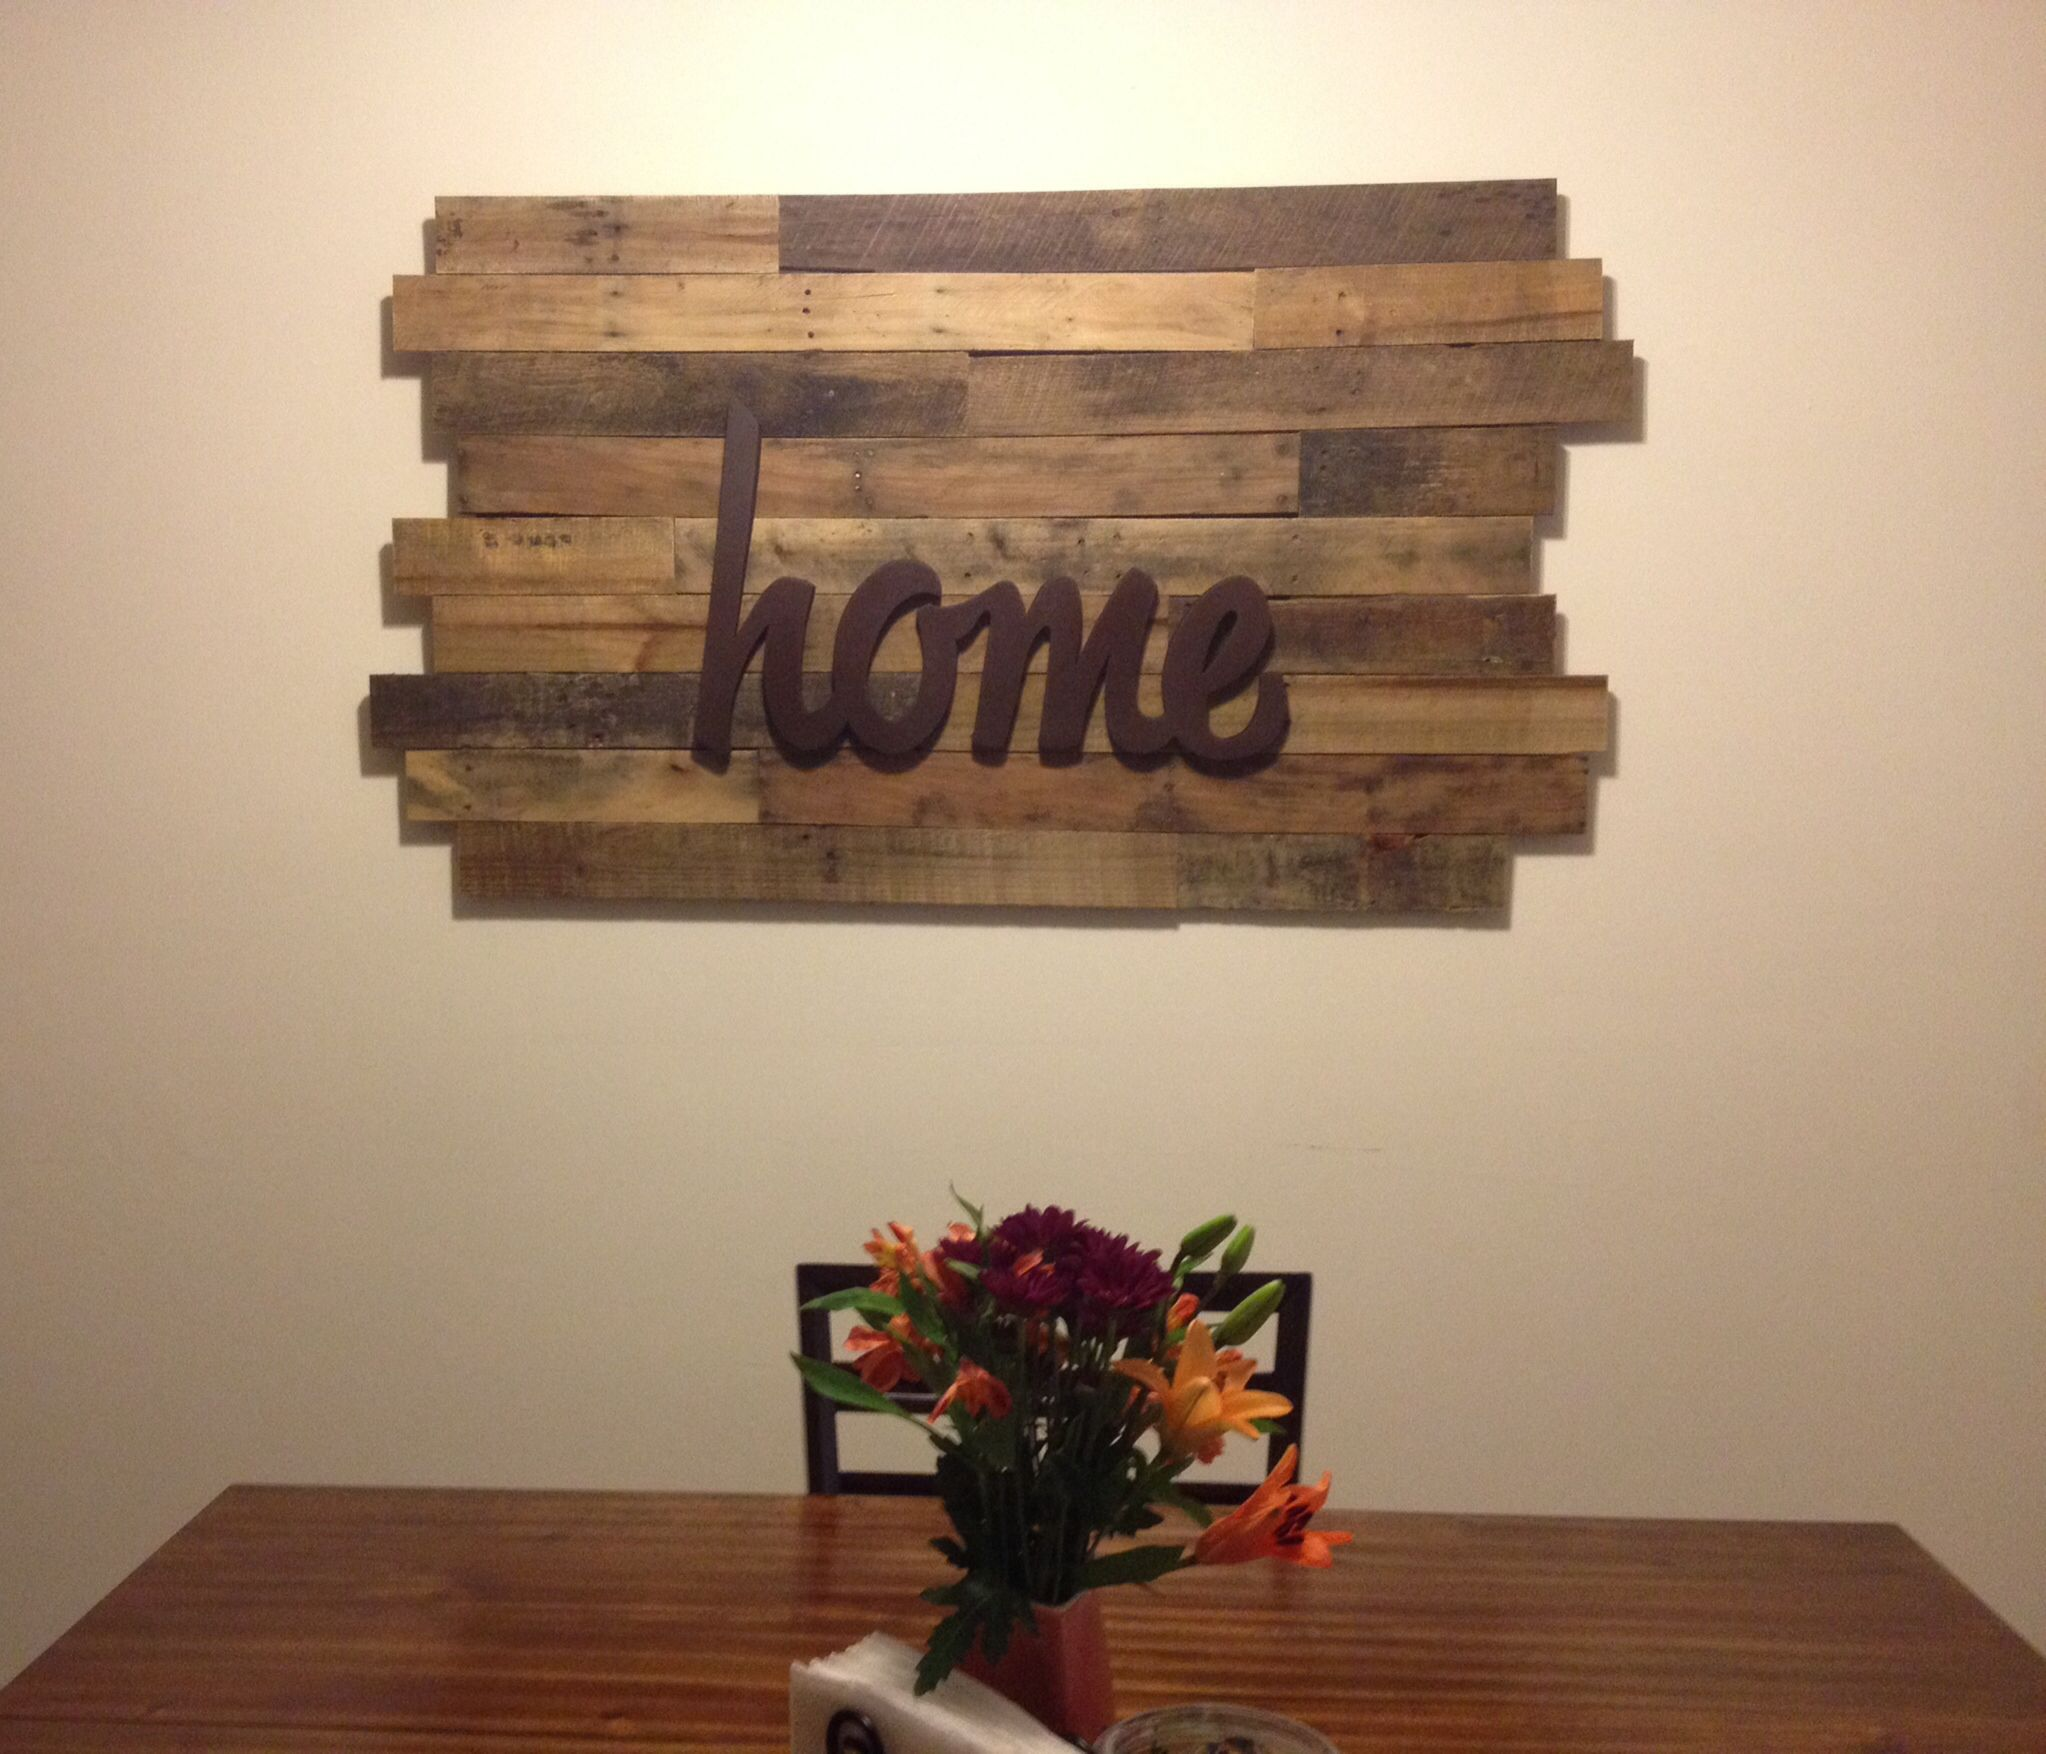 Pallet Art Wood Work Reclaimed Lumber Diy Pallet Wall Art Wood Pallet Wall Decor Diy Pallet Wall